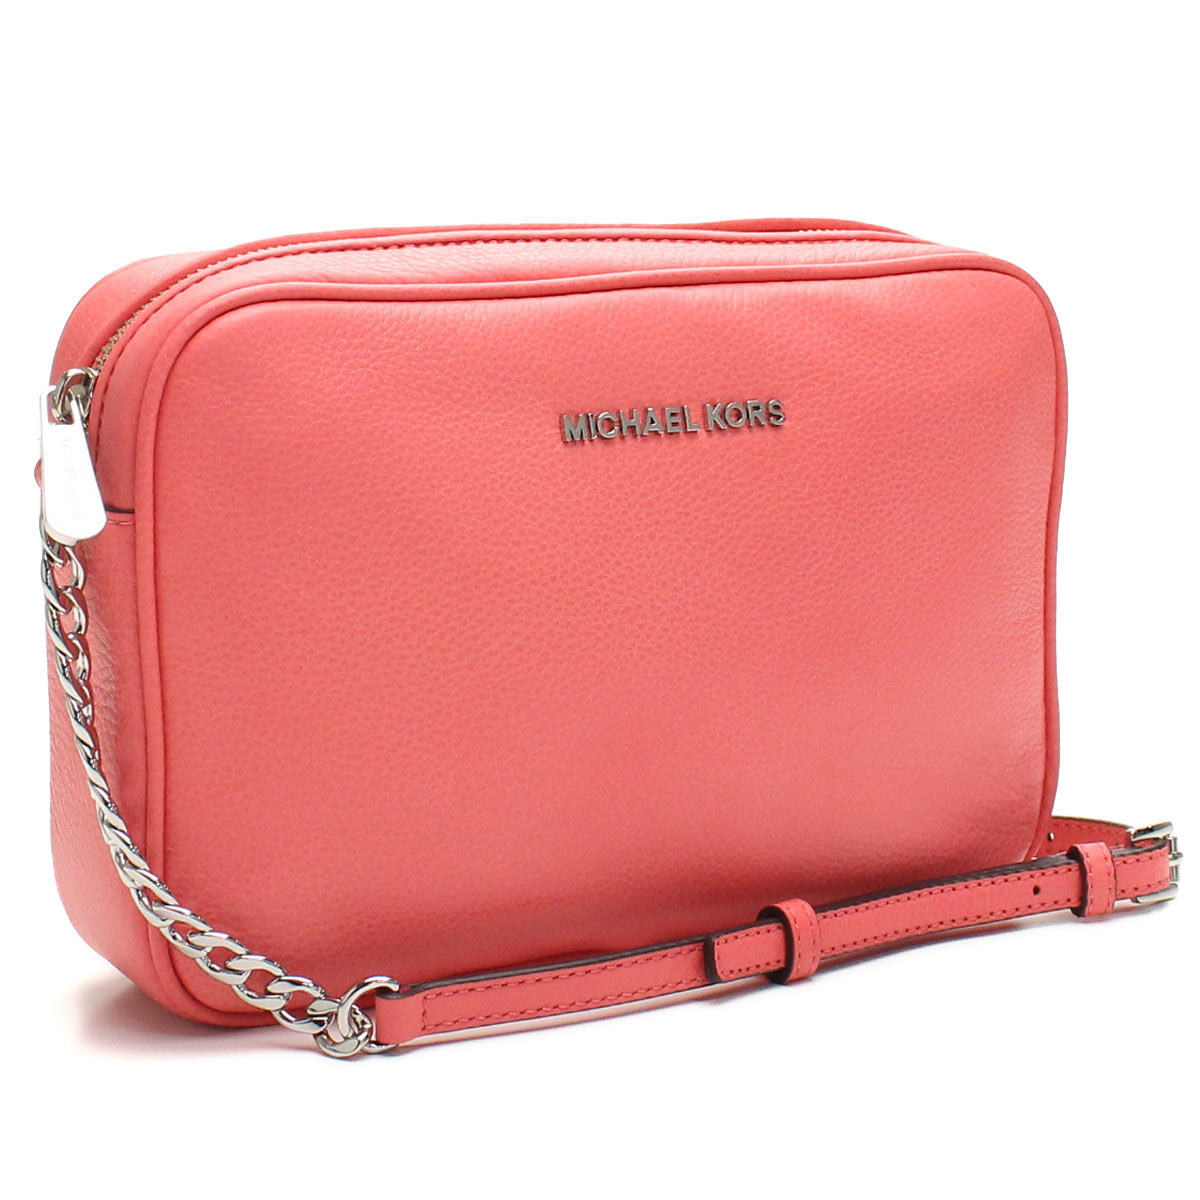 3f0a9bf8f1 Bighit The total brand wholesale  Michael Kors (MICHAEL KORS) BEDFORD  diagonal shoulder bag 32F5SBFC3L CORAL pink( taxfree send by  EMS authentic A brand new ...